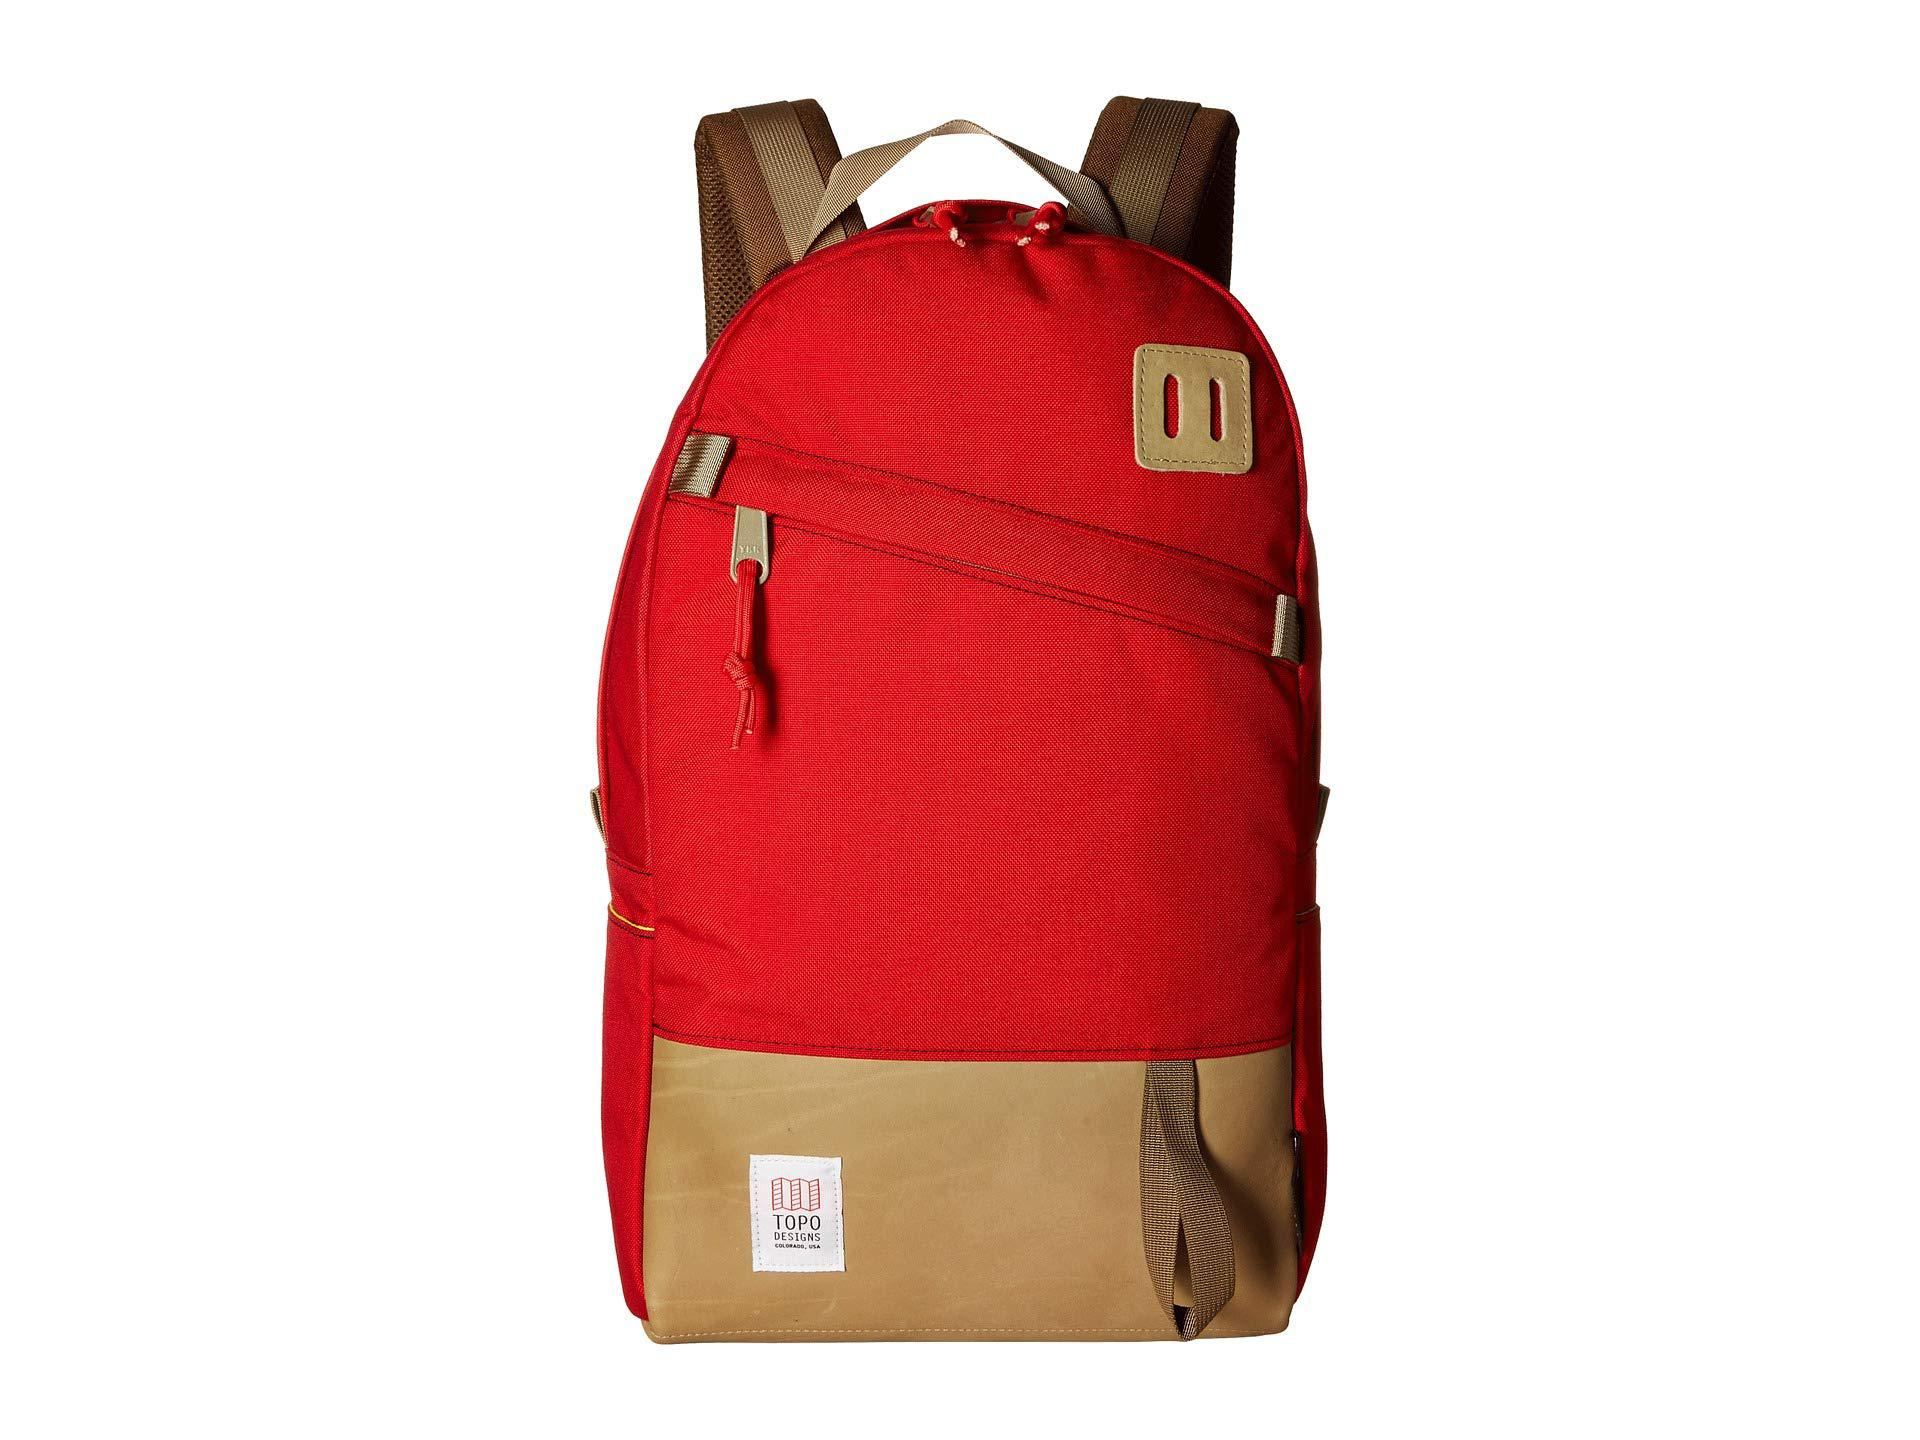 Lyst - Topo Designs Daypack (clay) Backpack Bags in Red for Men 276a4d50e4